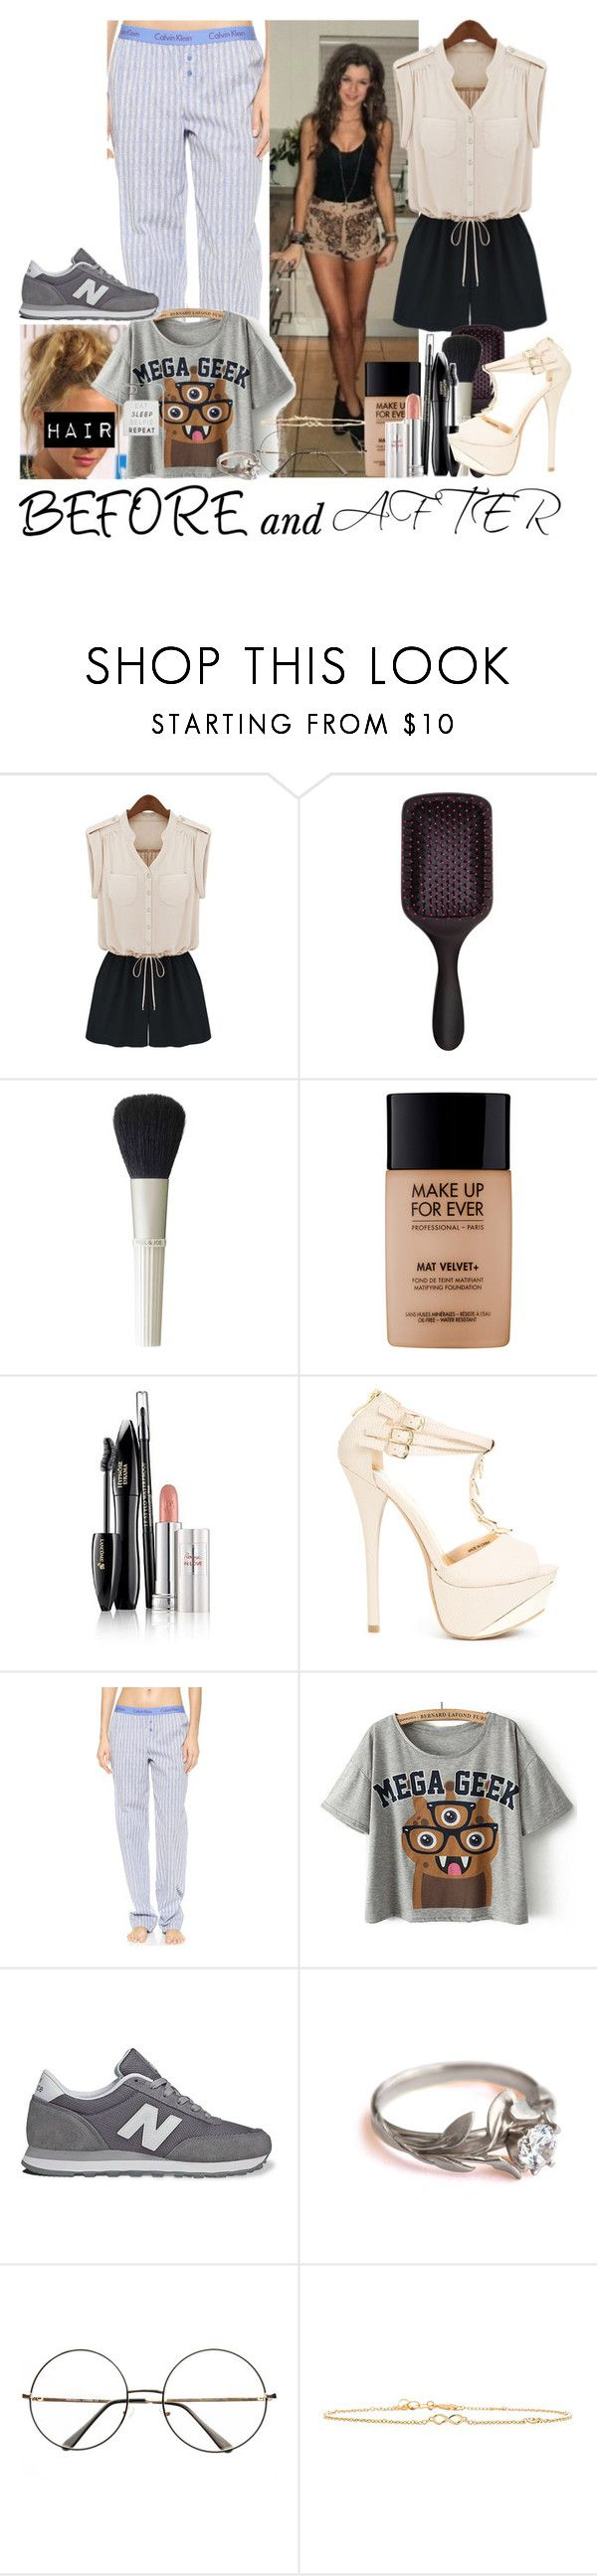 """""""Sans titre #152"""" by faanfic-1d ❤ liked on Polyvore featuring Calder, DIVA, Paul & Joe, MAKE UP FOR EVER, Lancôme, 2b bebe, Calvin Klein Underwear, New Balance, Sydney Evan and River Island"""